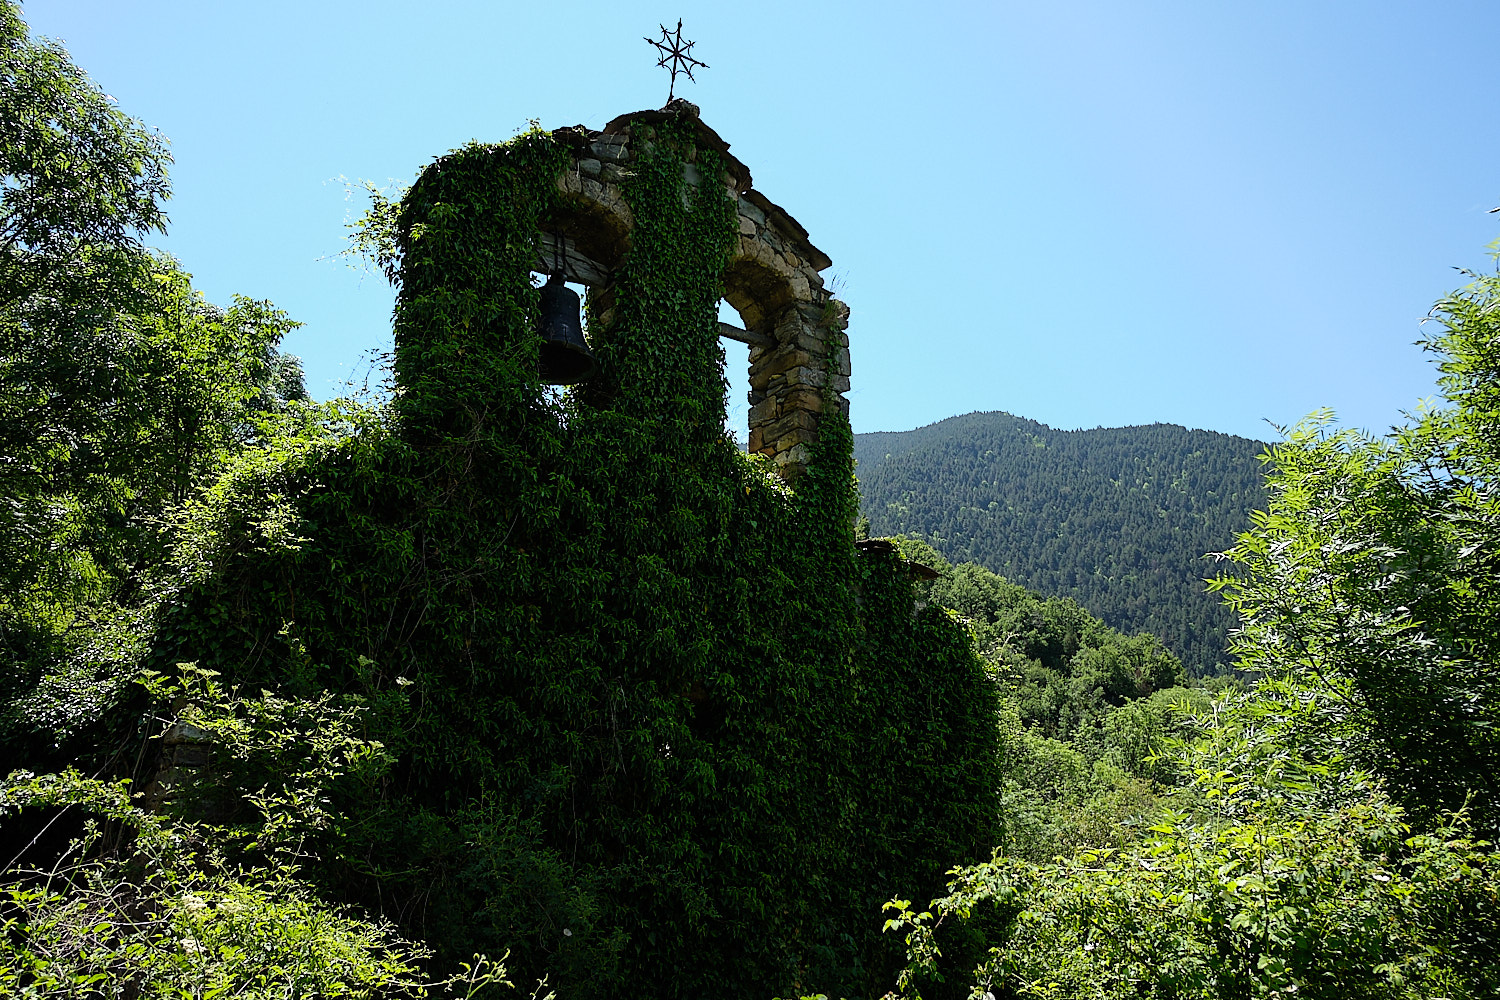 Abandoned bells tower at Saraís (ghost town), Vall de Boí, Pyrenees, Spain